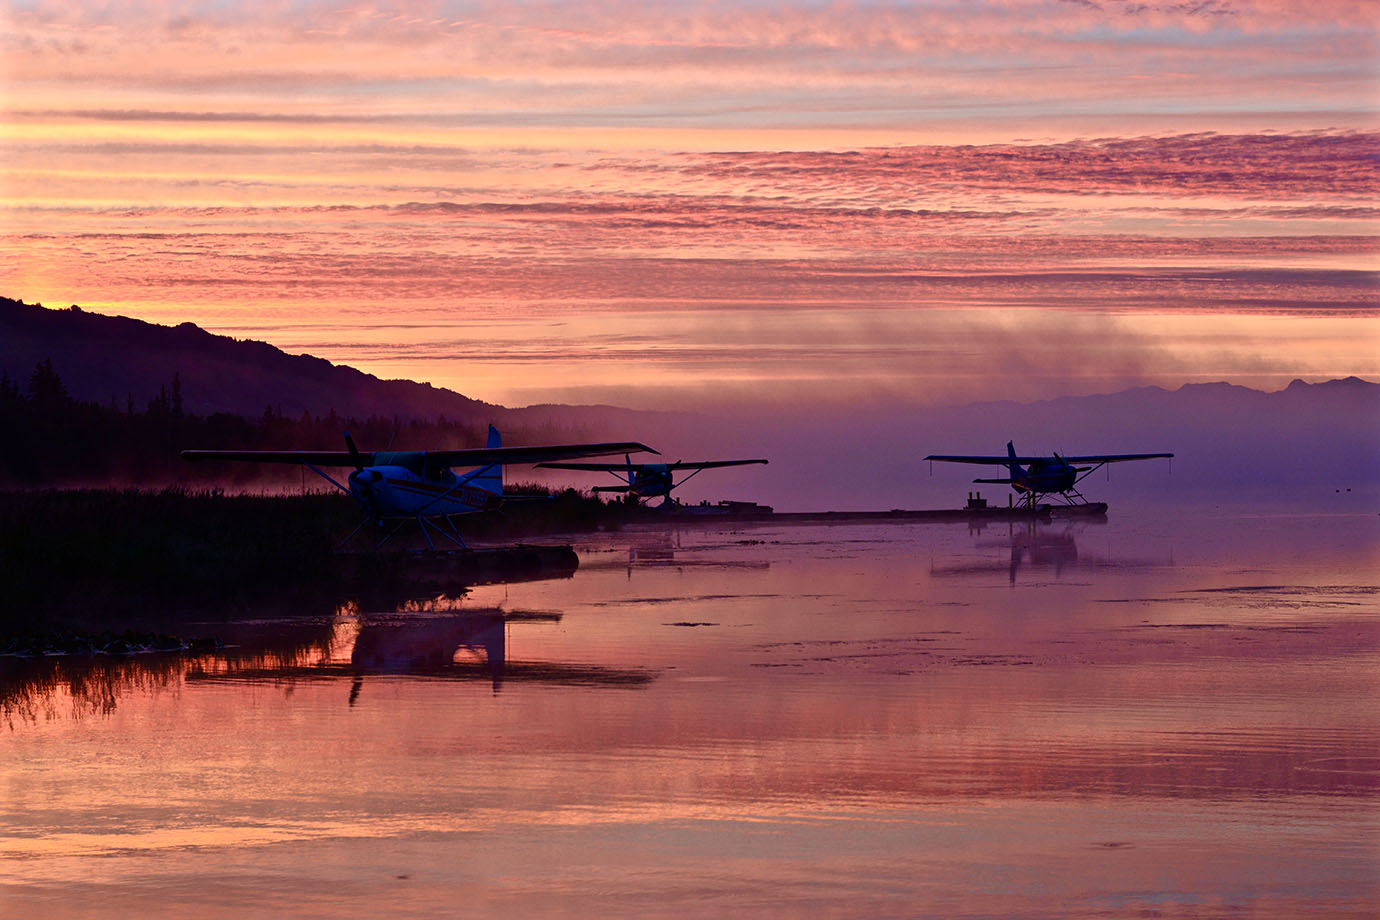 Seaplanes at sunrise